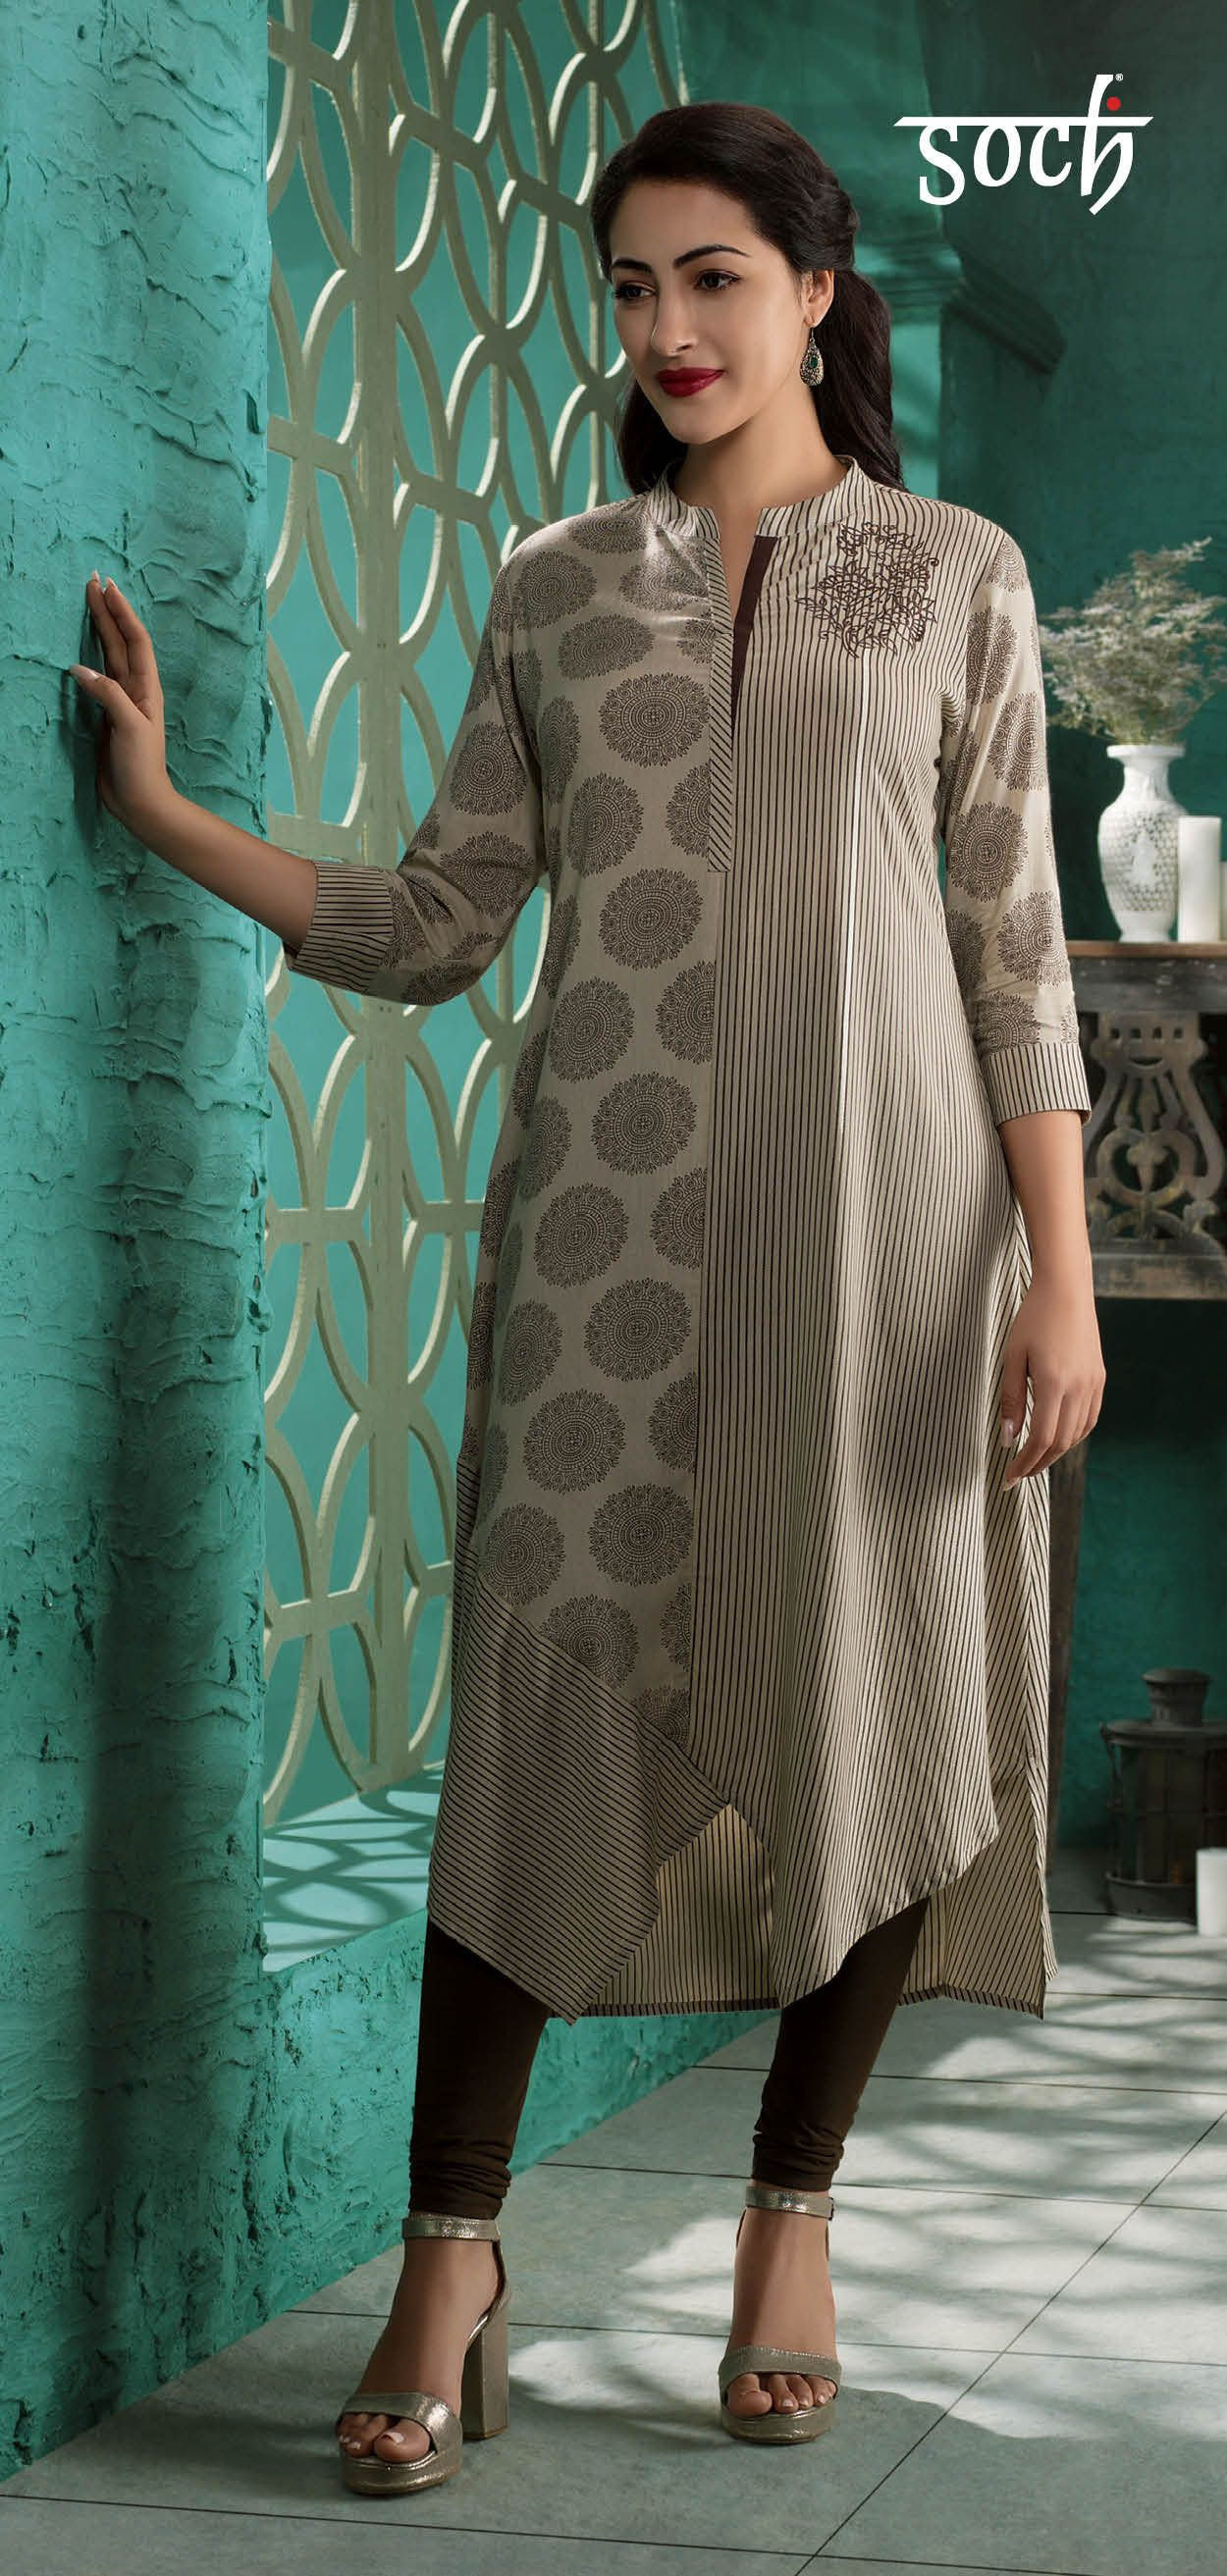 03491a2f5c Uniquely designed with ethnic motifs, this beige Soch kurti exudes style.  Tailored to perfection with rayon fabric in an A-line cut and 3/4th  sleeves, ...